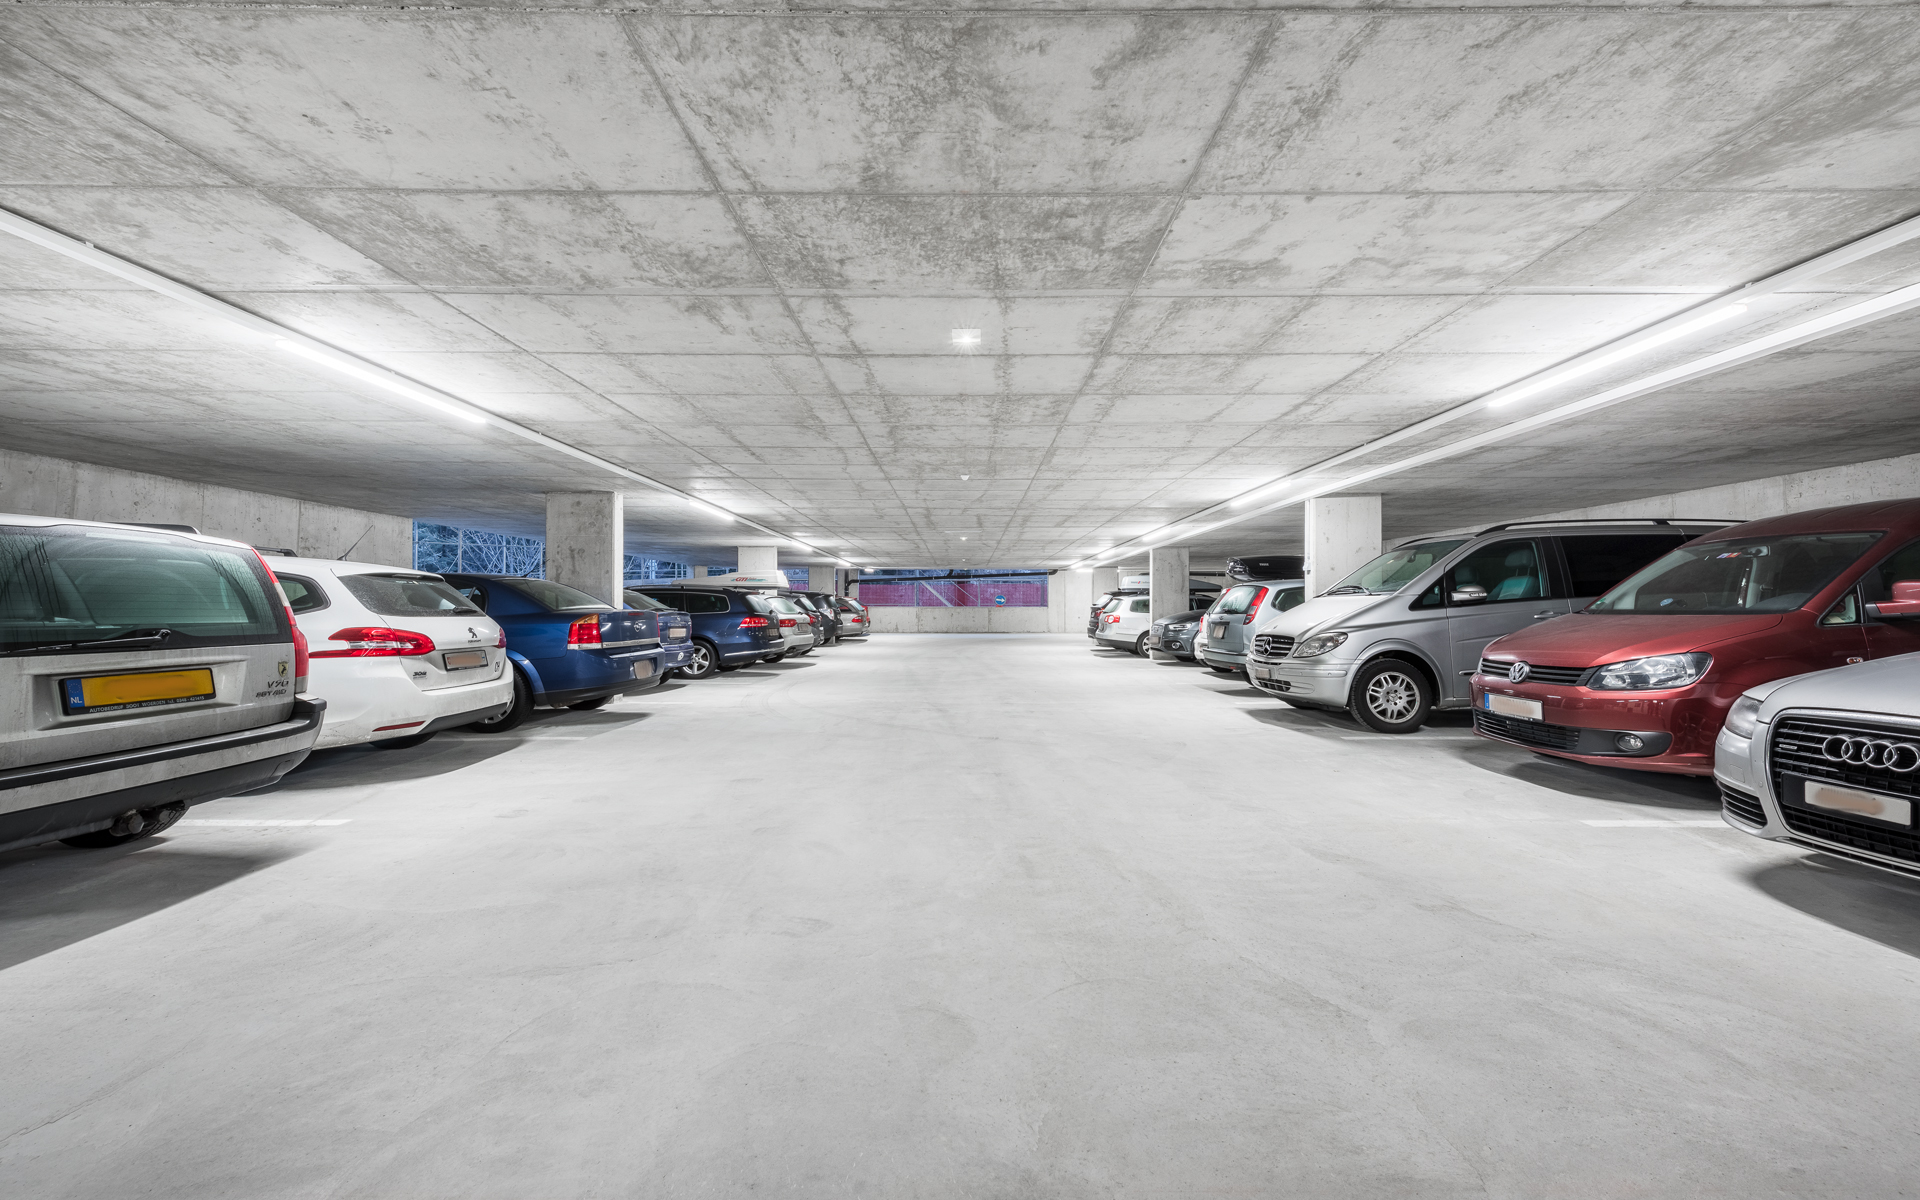 37/PARKING/Hotel-Car-park-parking-Kube-Paris.jpg